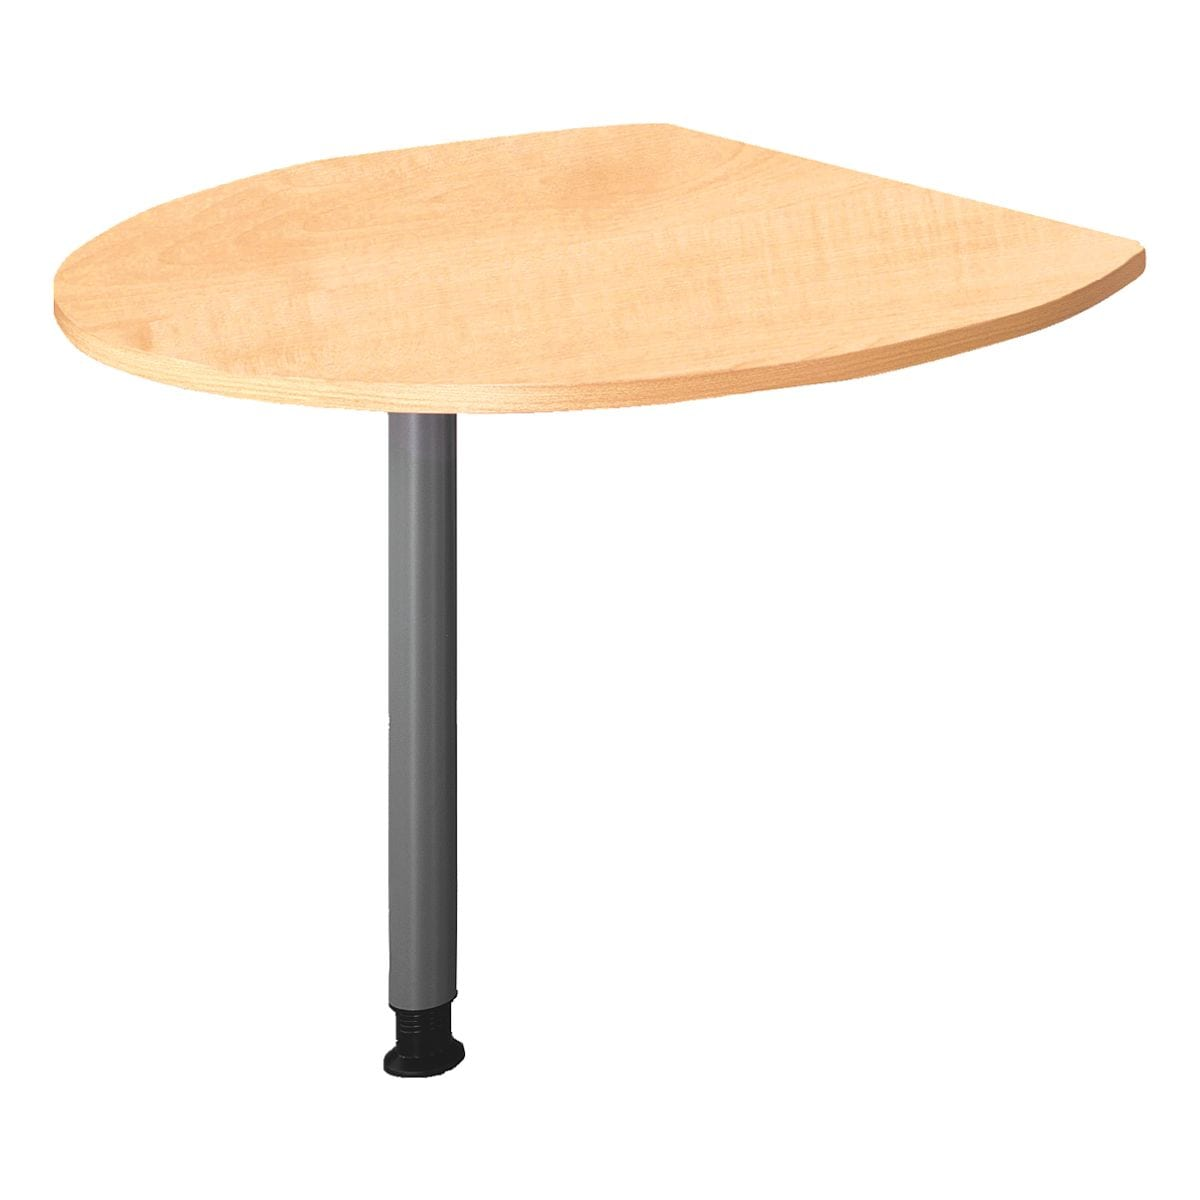 HAMMERBACHER Table d'extension 100x80 cm avec pied de renfort